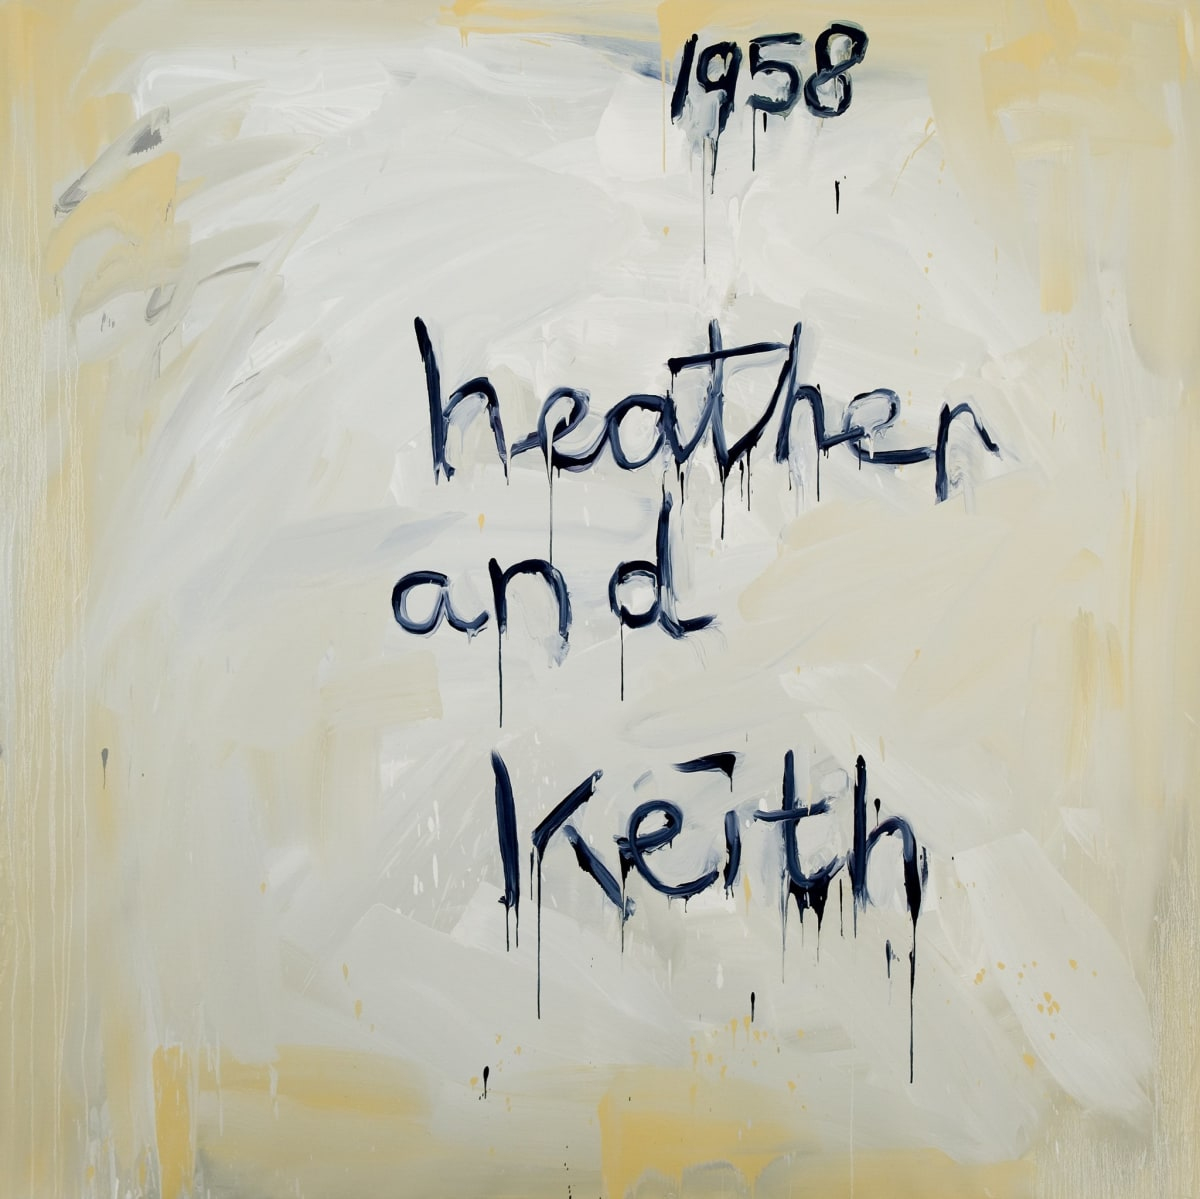 Laura Lancaster, 1958 Heather and Keith, 2012